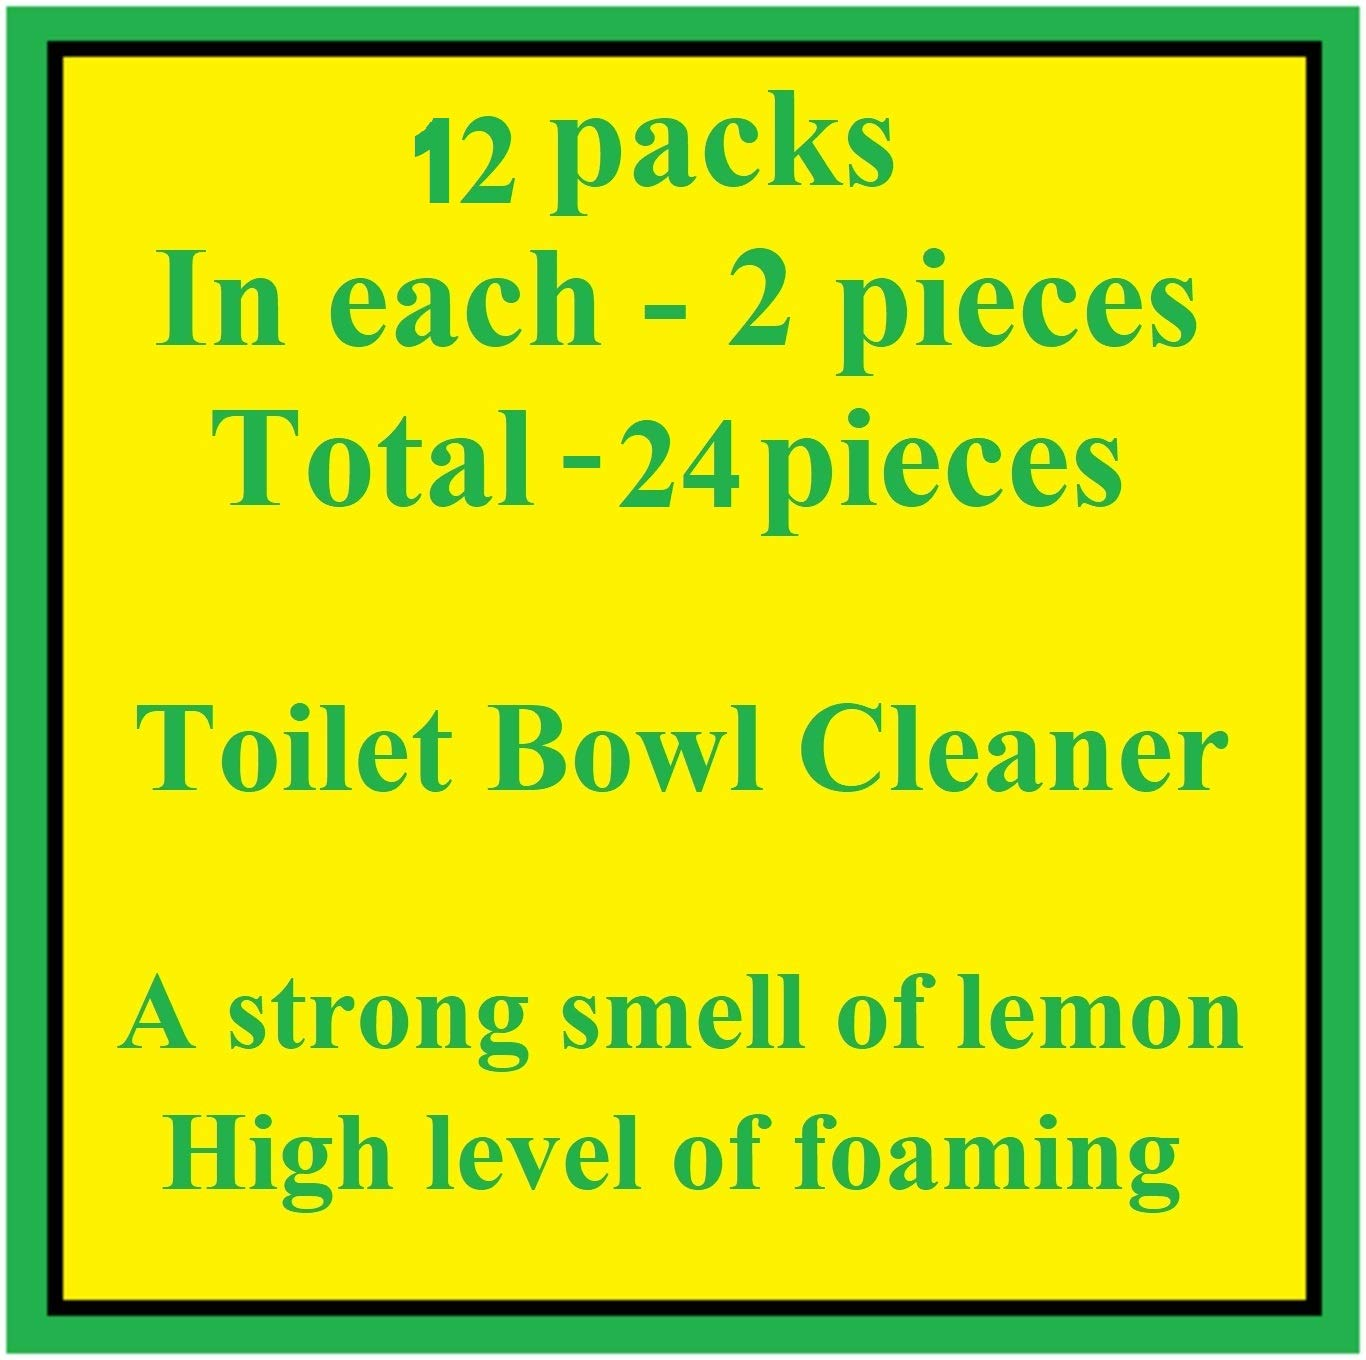 Automatic Toilet Bowl Cleaner Lemon 2 pcs with Stronger Long-Lasting Lemon Scent at Full 5%. Foaming 5-in-1 Cleaner deep Cleans with Every Flush … (12) by Beseder (Image #3)